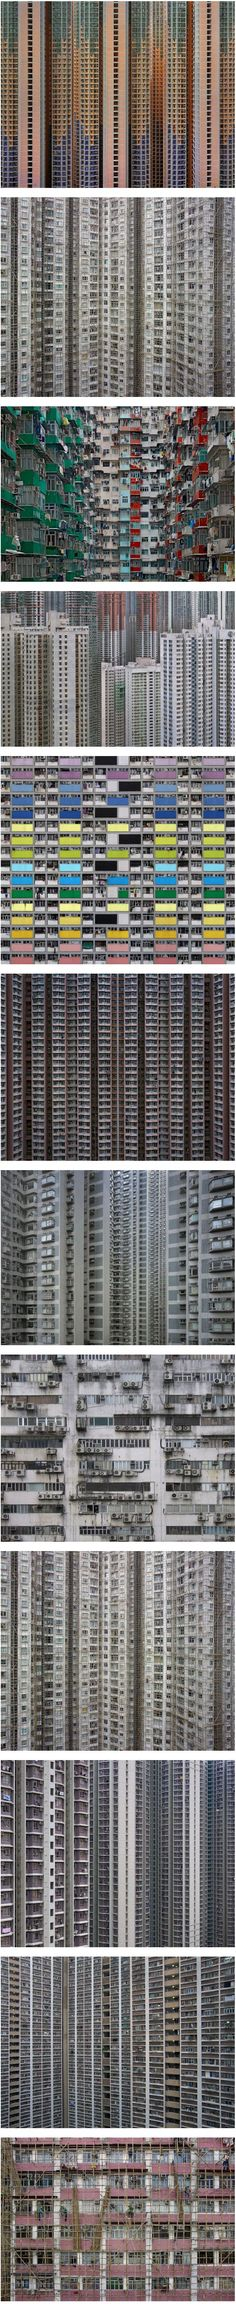 Architecture of Density, Michael Wolfhttp://photomichaelwolf.com